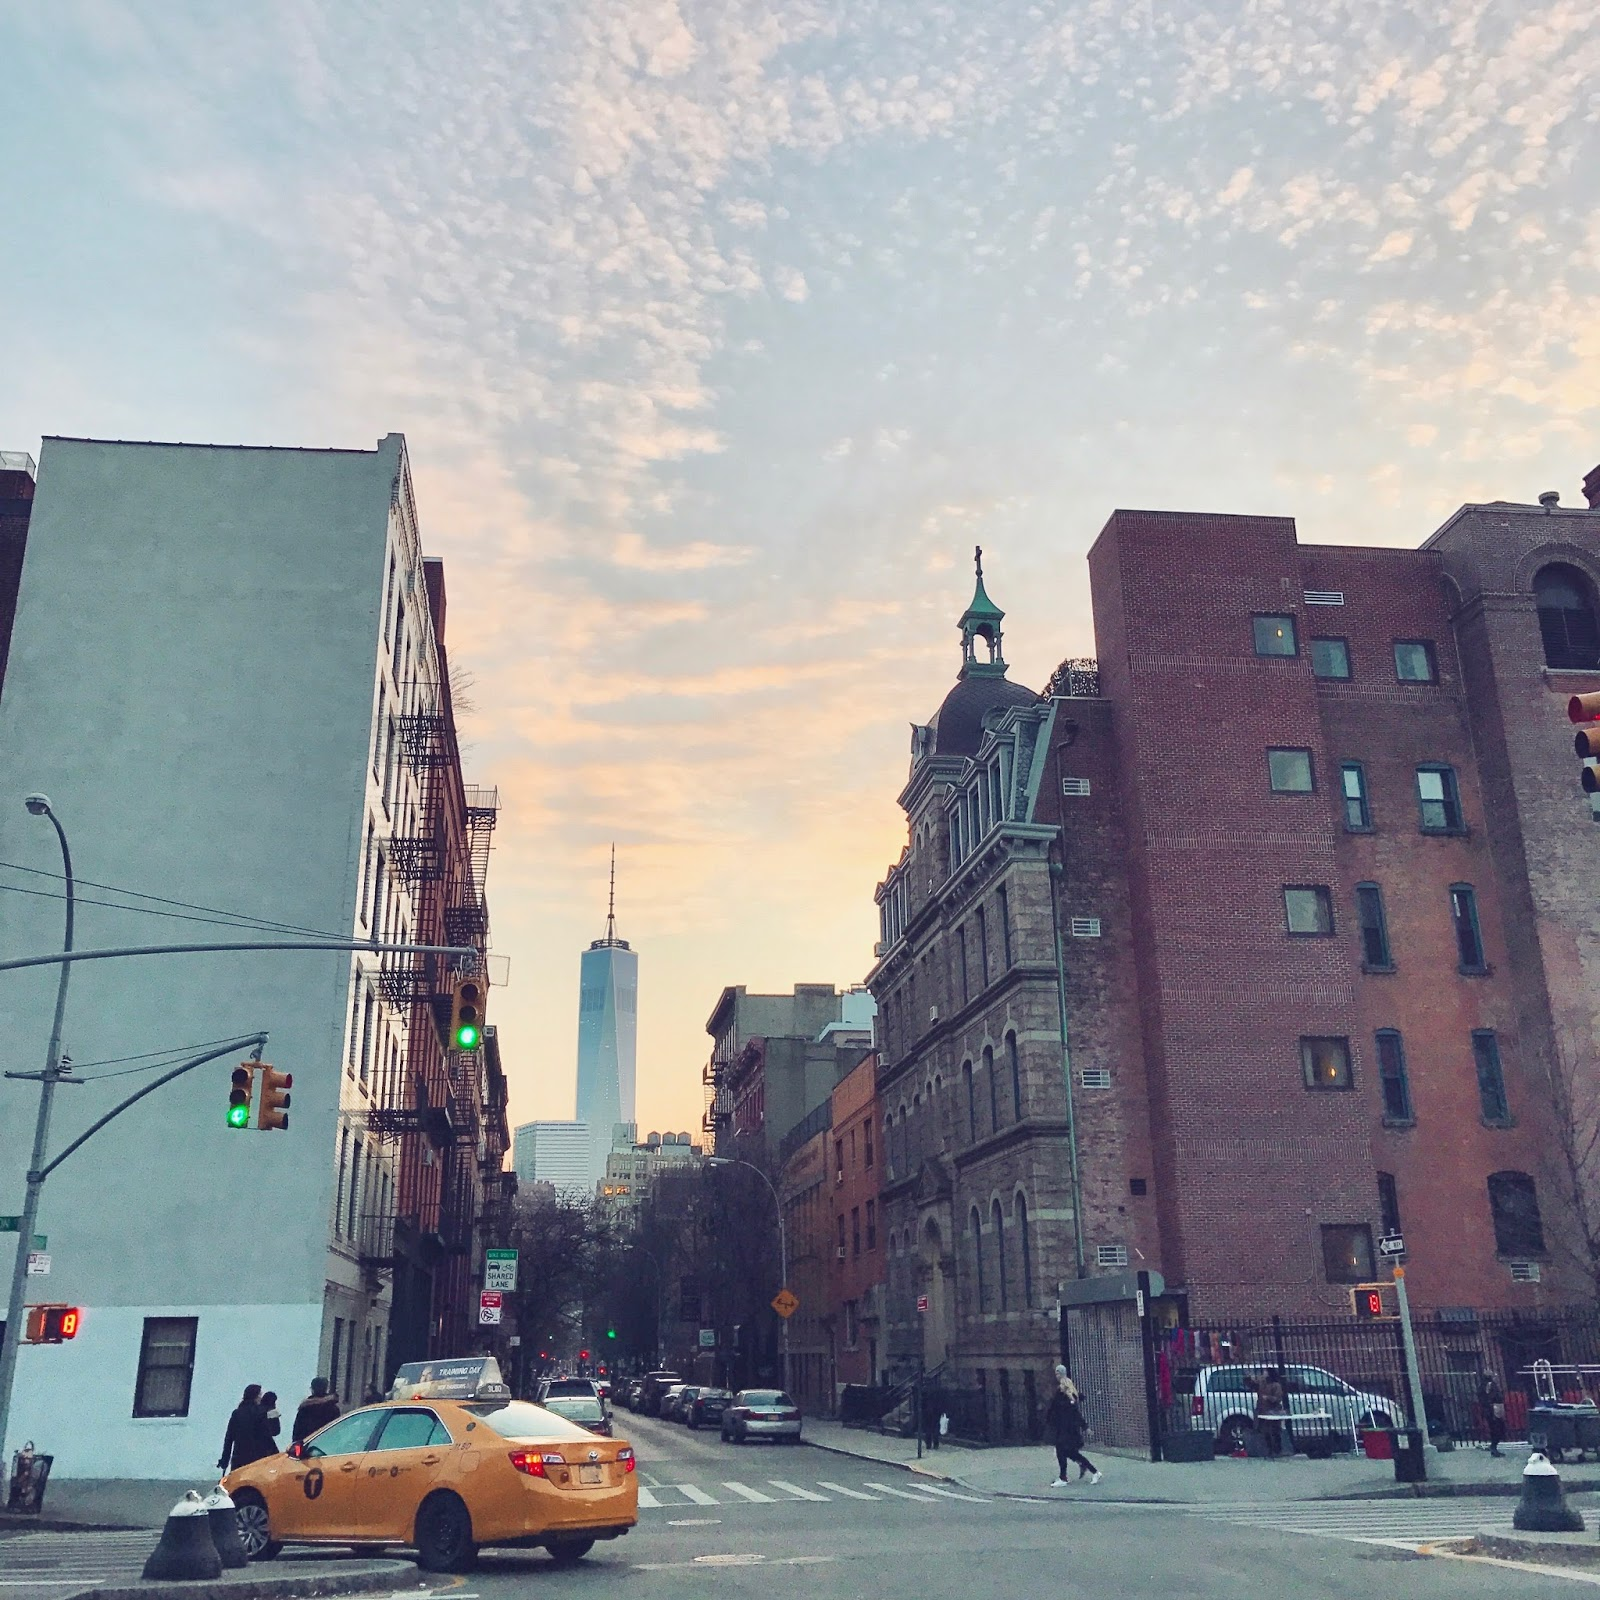 Things I didn't know about New York